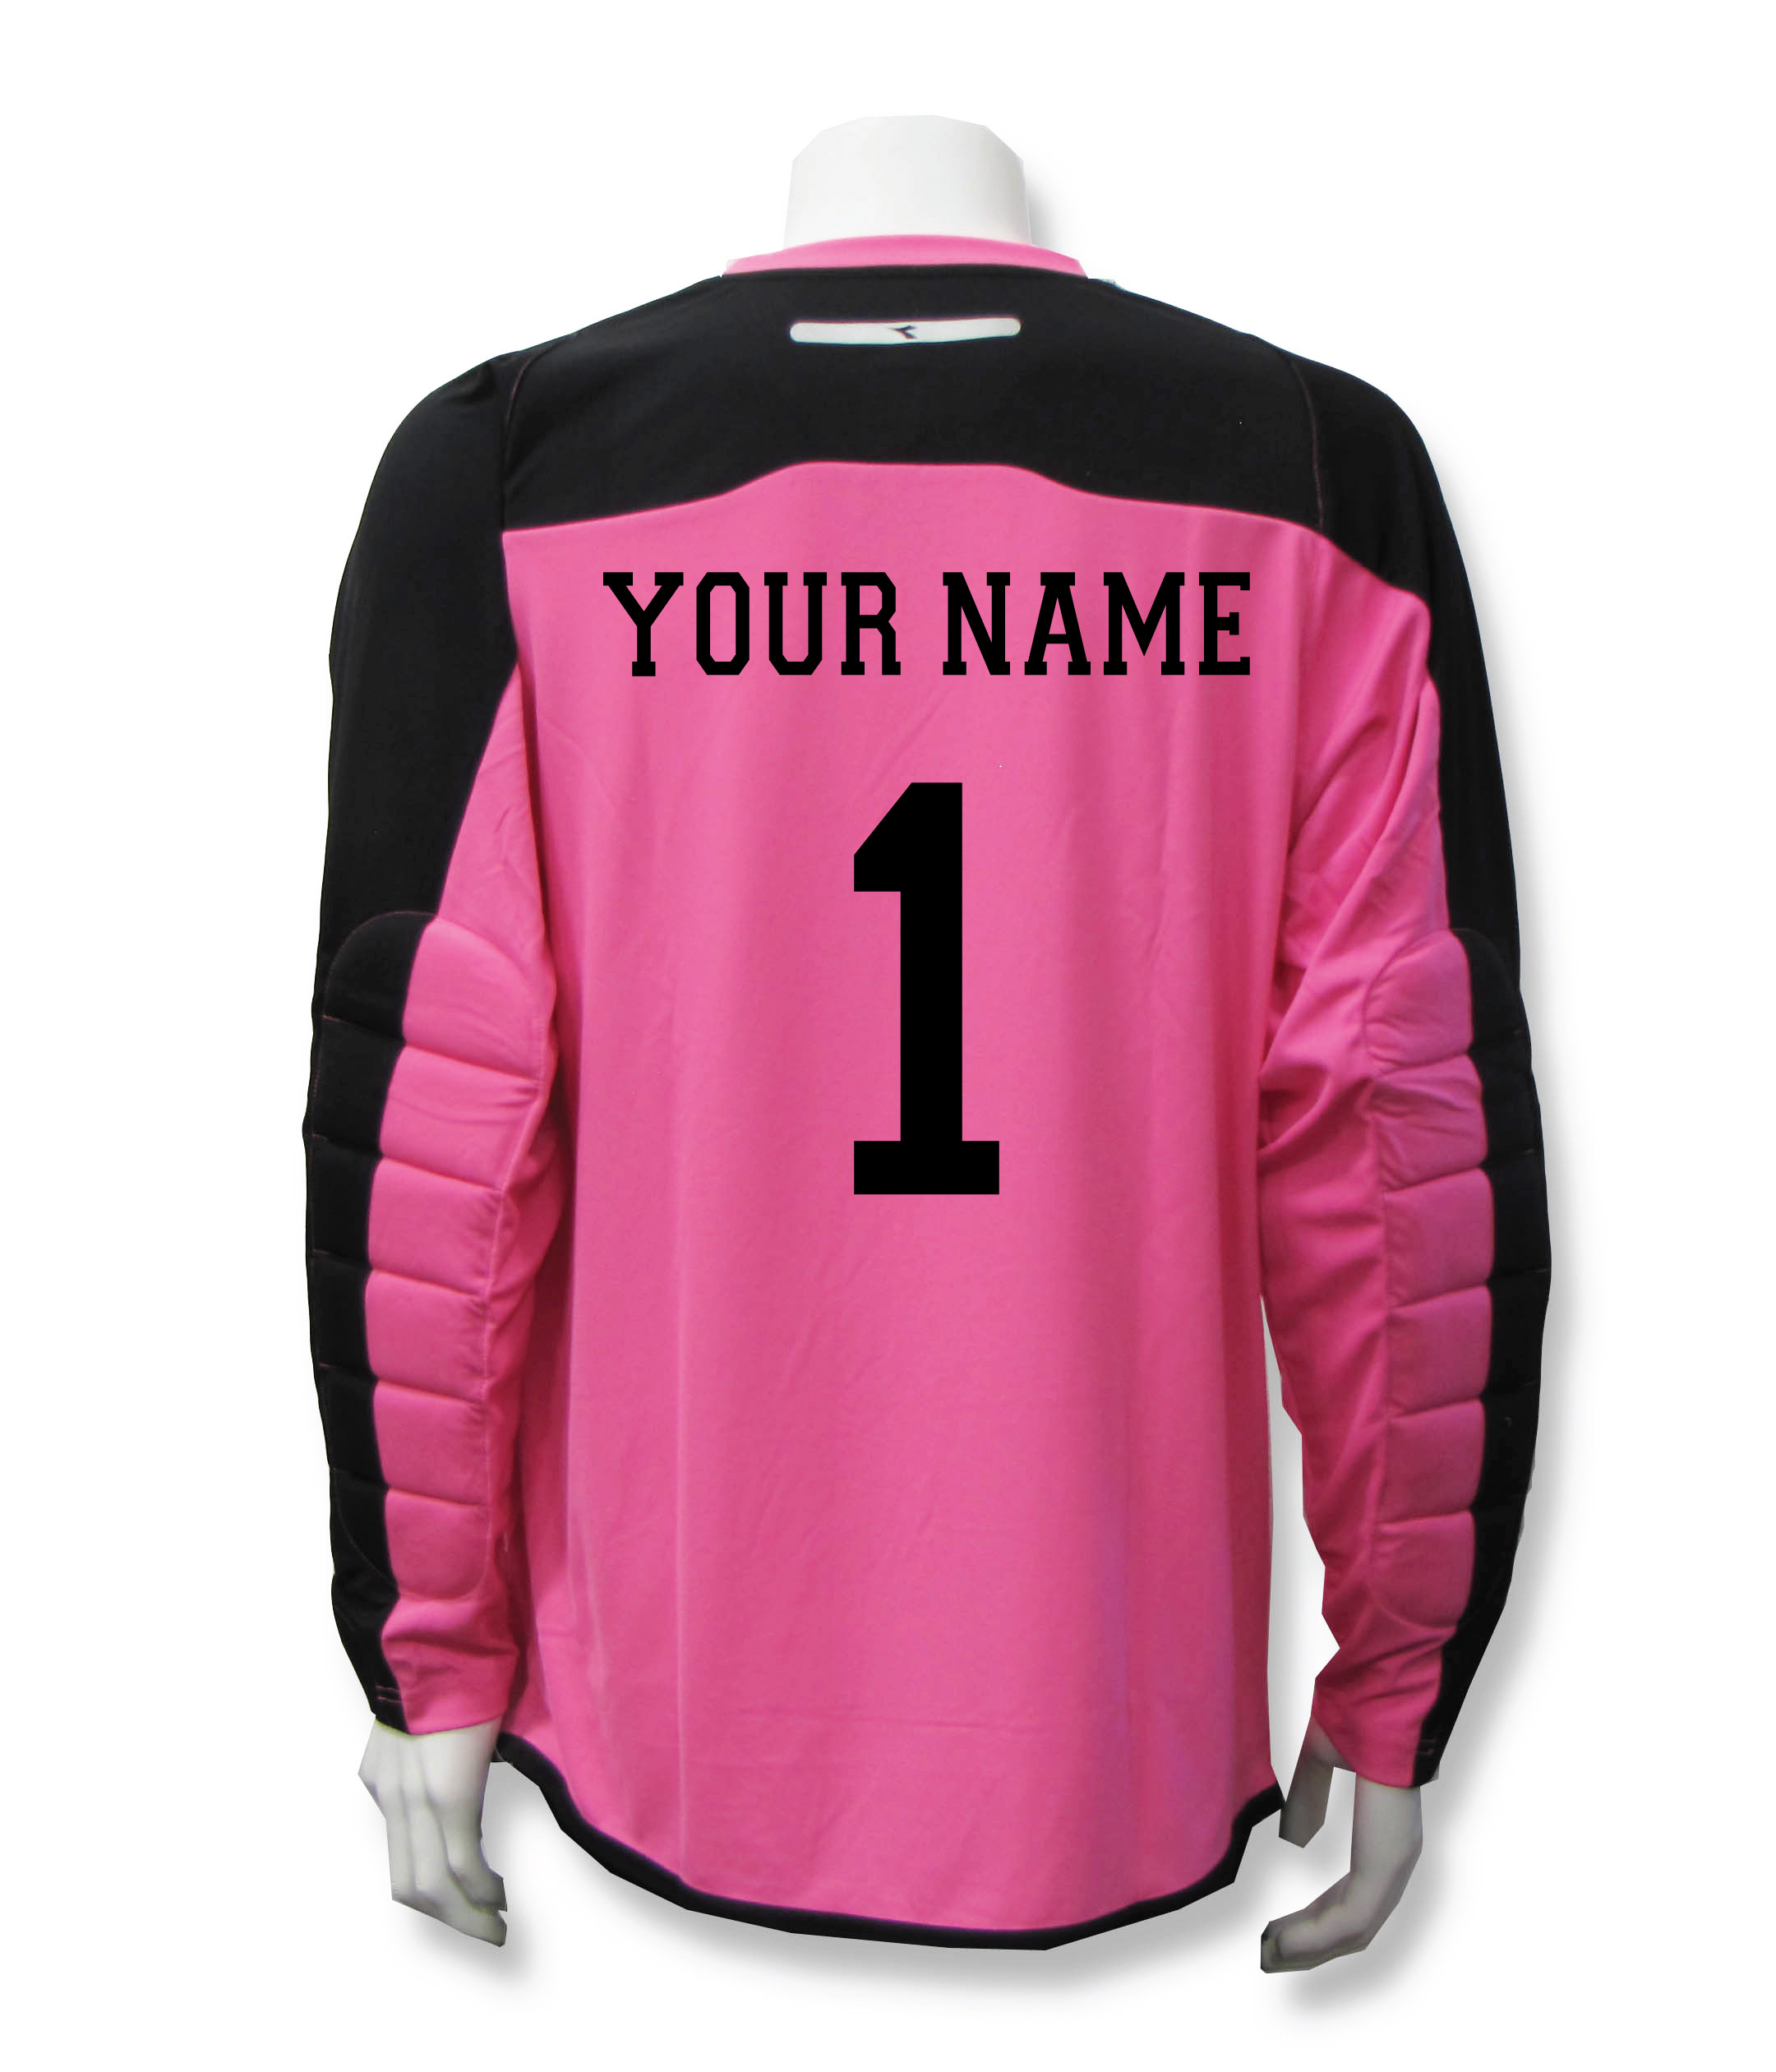 Diadora Enzo goalkeeper jersey with name and number on back, in pink, by Code Four Athletics